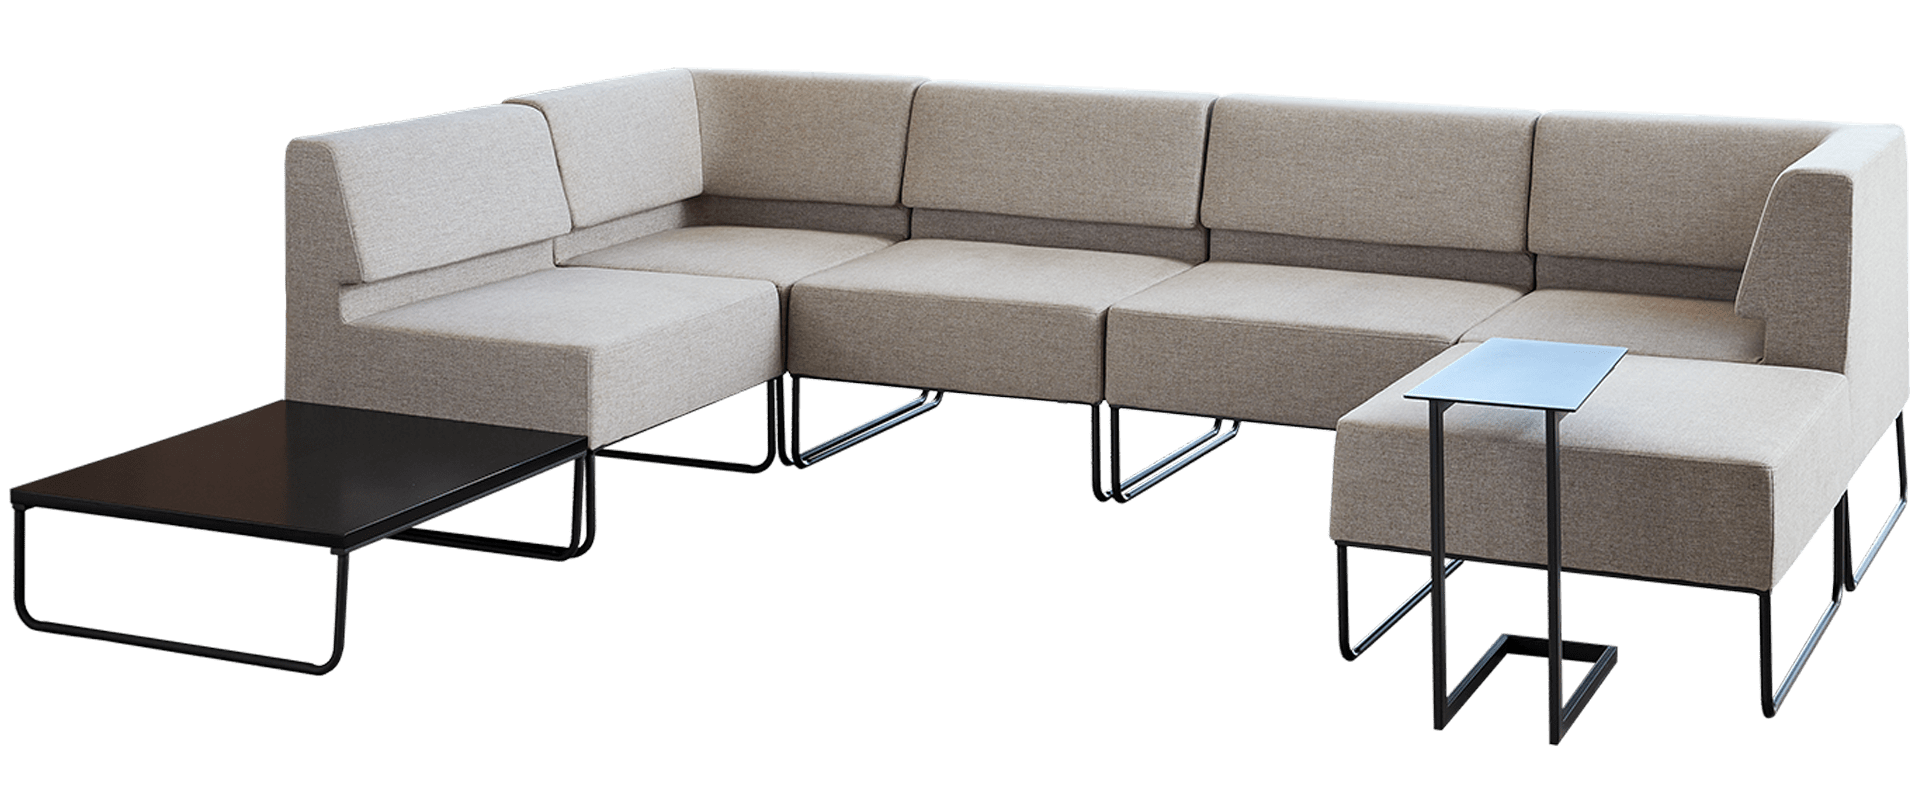 sectional sofa with various tables